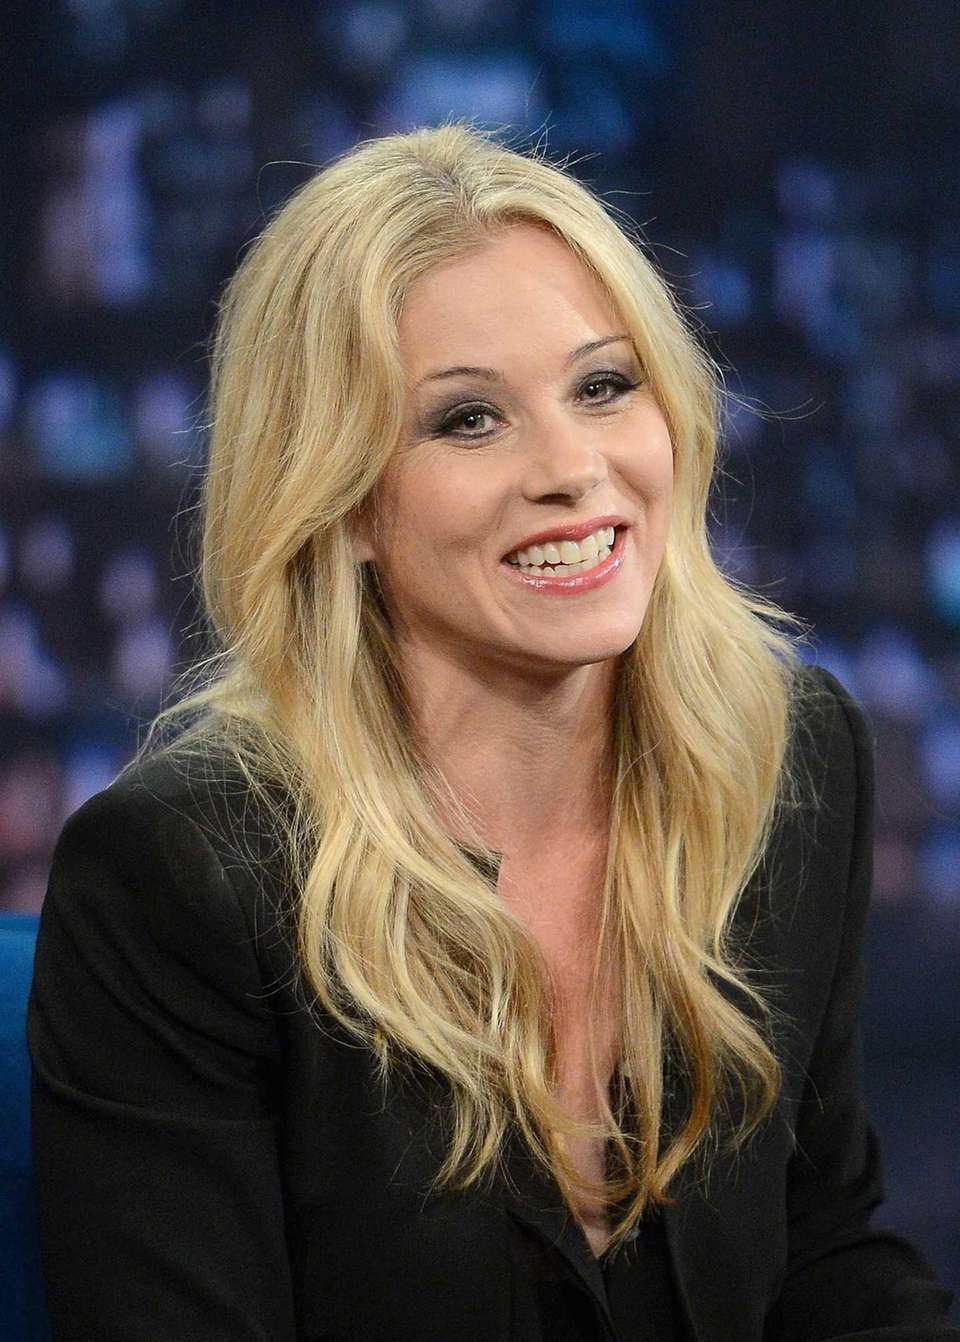 Actress Christina Applegate, born on Nov. 25, 1971.